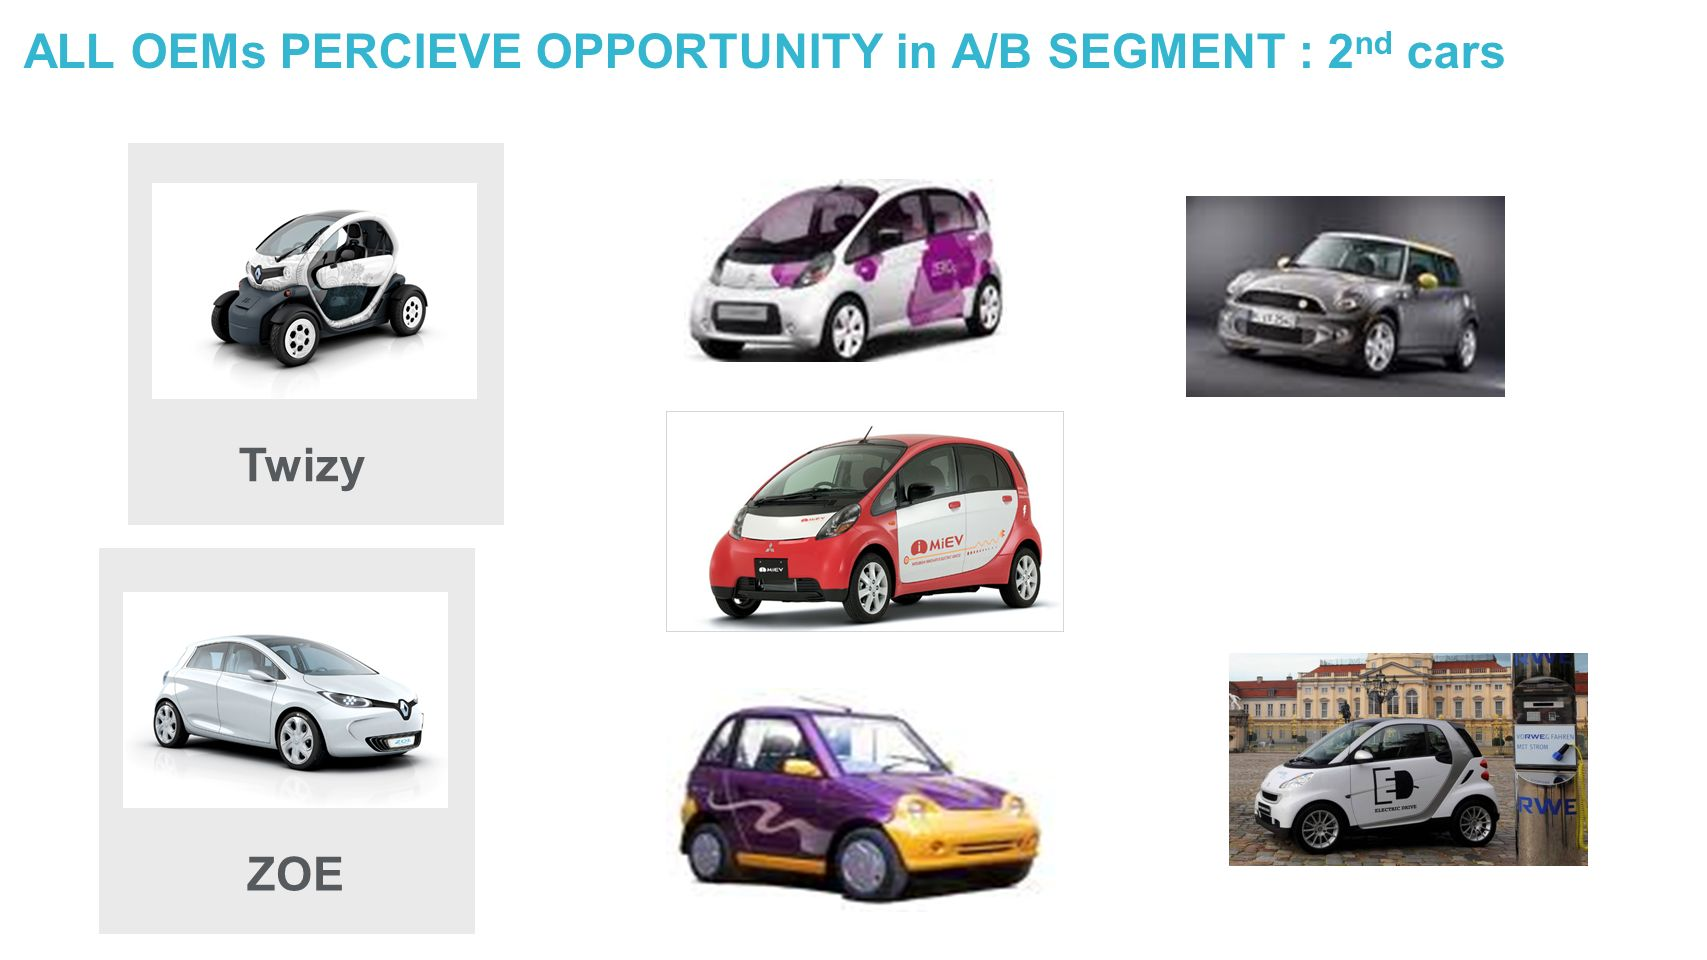 Twizy ALL OEMs PERCIEVE OPPORTUNITY in A/B SEGMENT : 2 nd cars ZOE